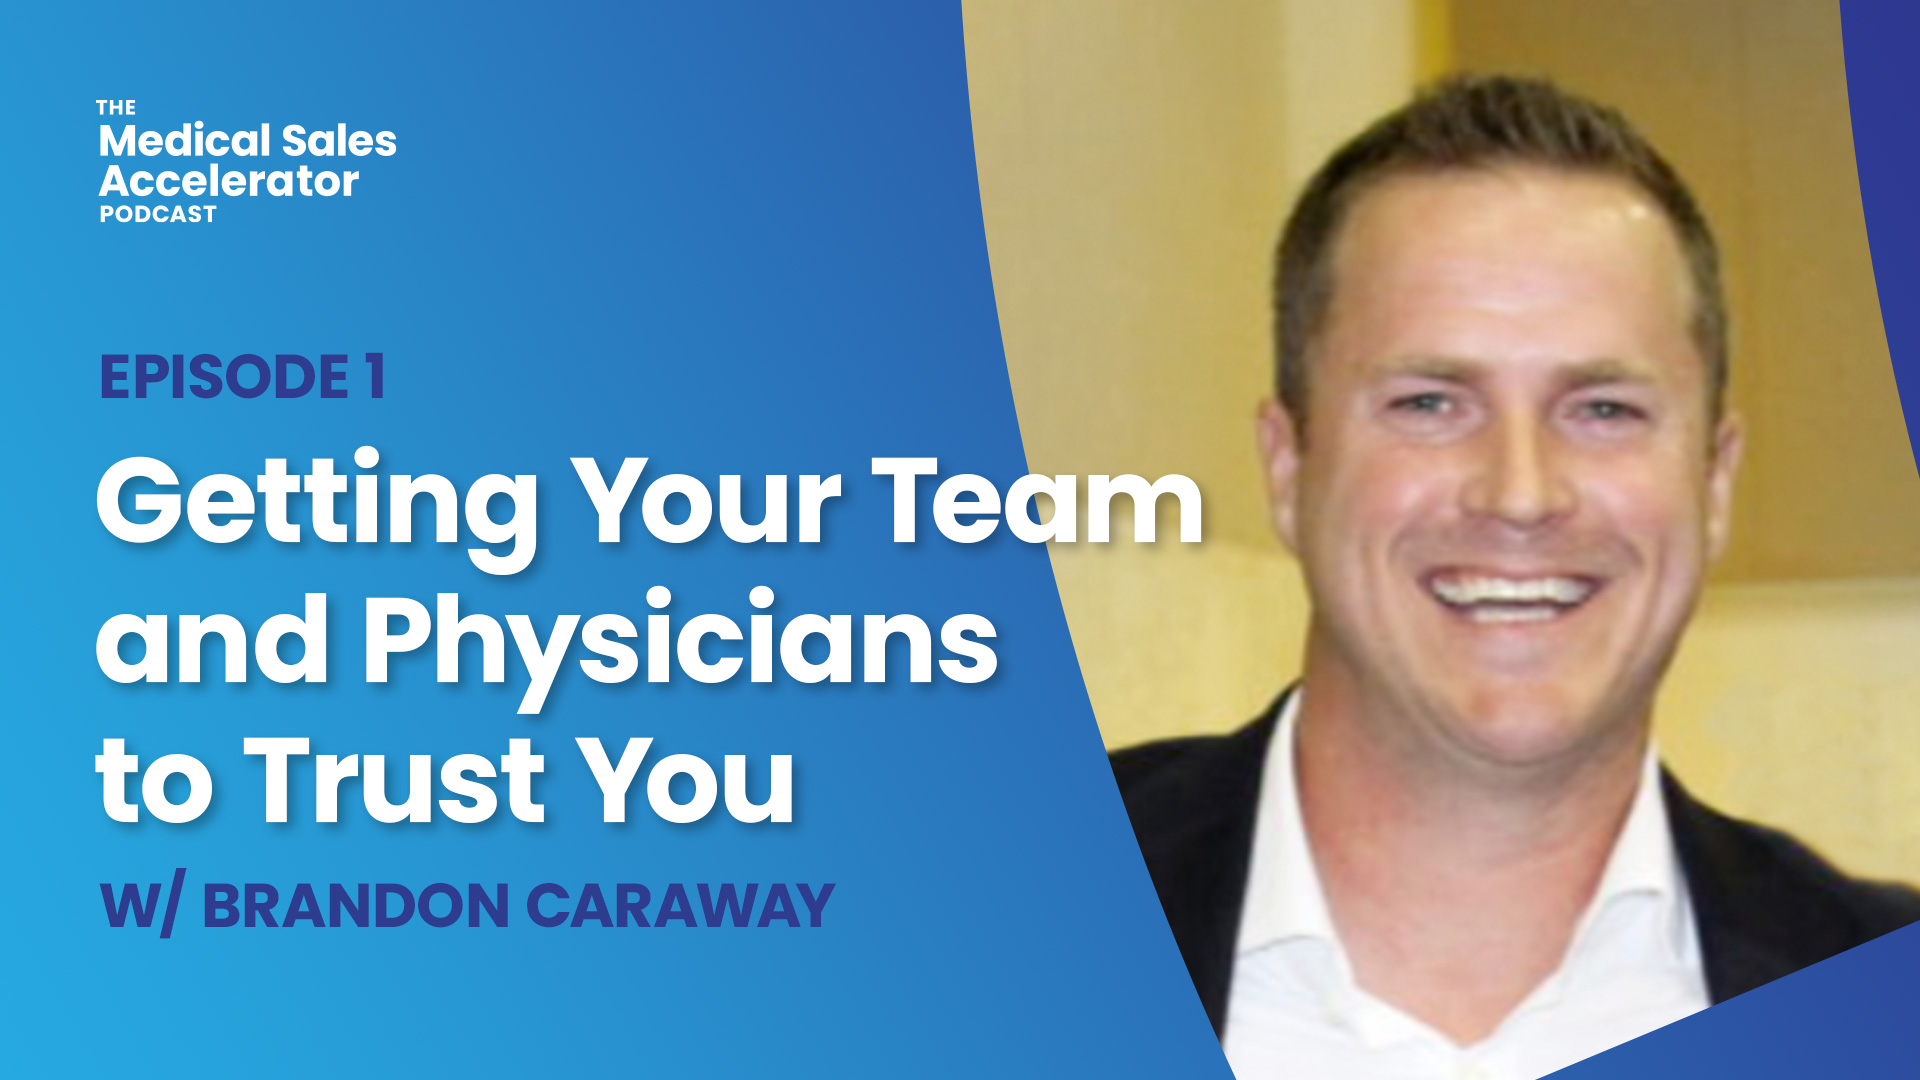 Getting Your Team and Physicians to Trust You.